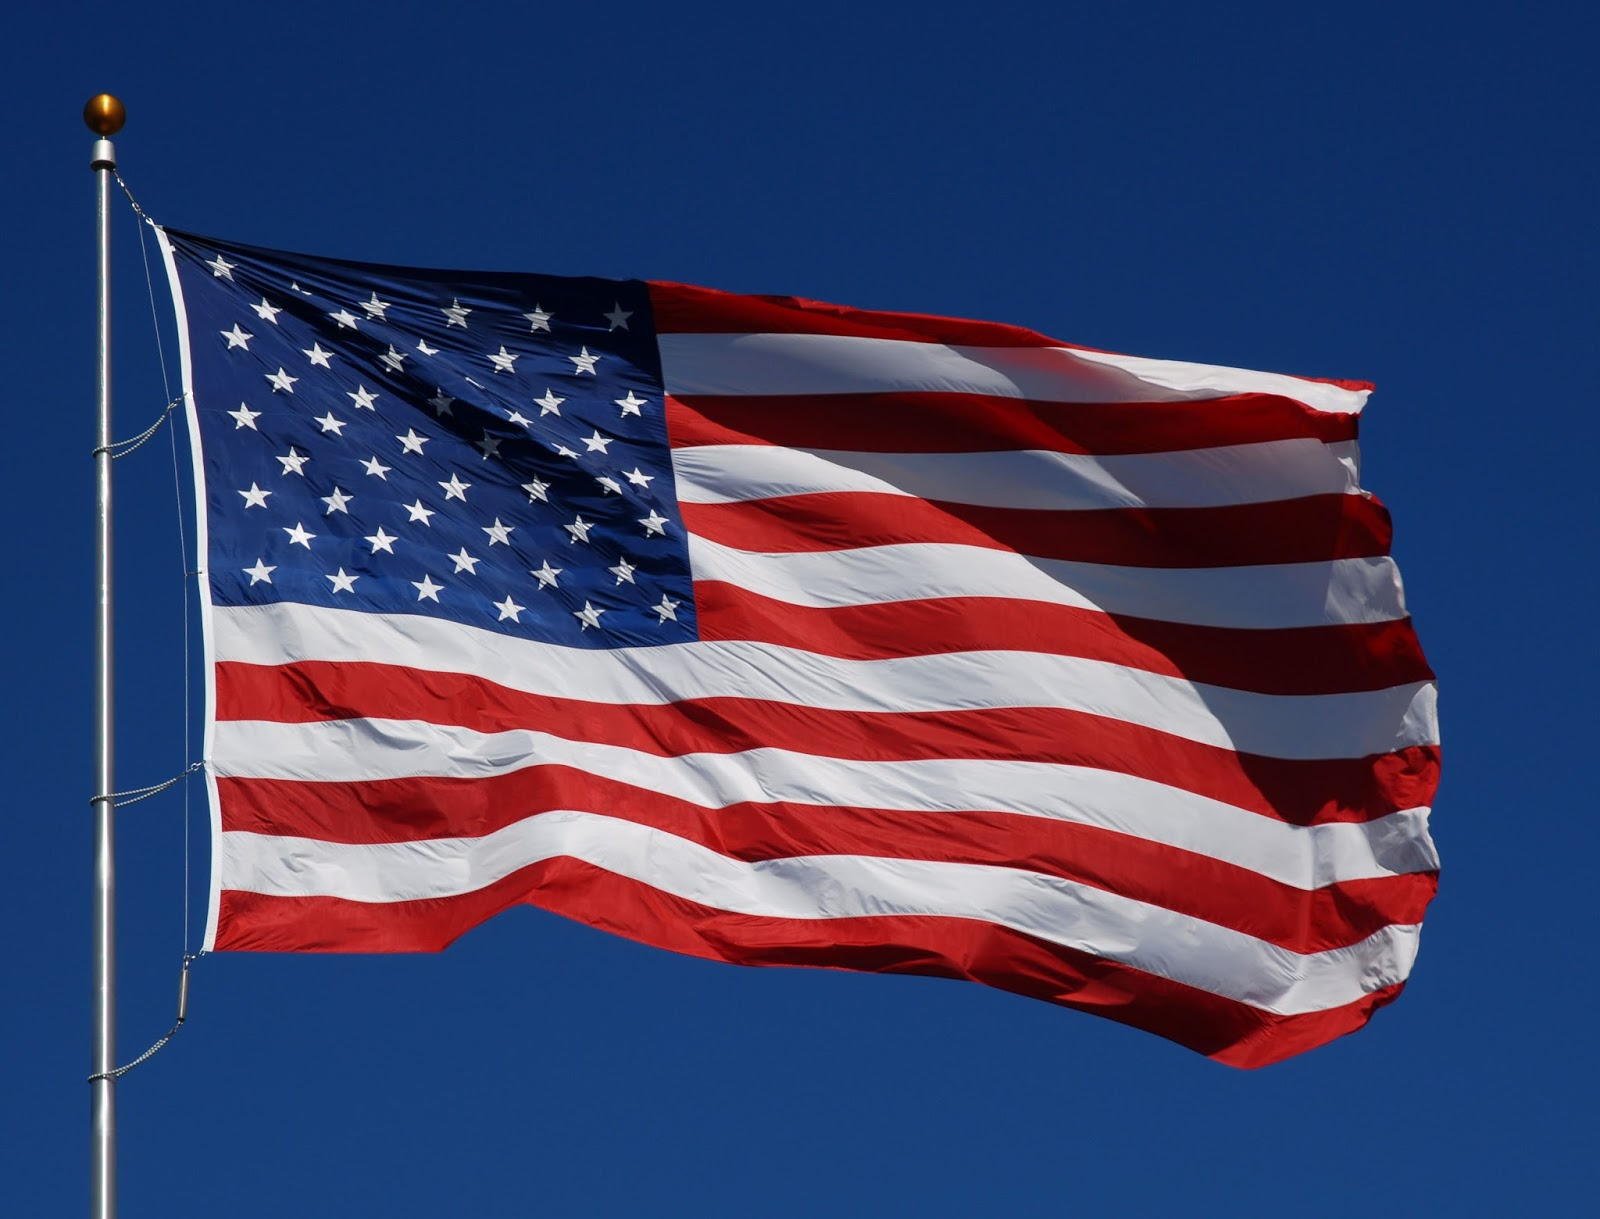 american flag hd wallpaper old american flag with black background hd 1600x1219